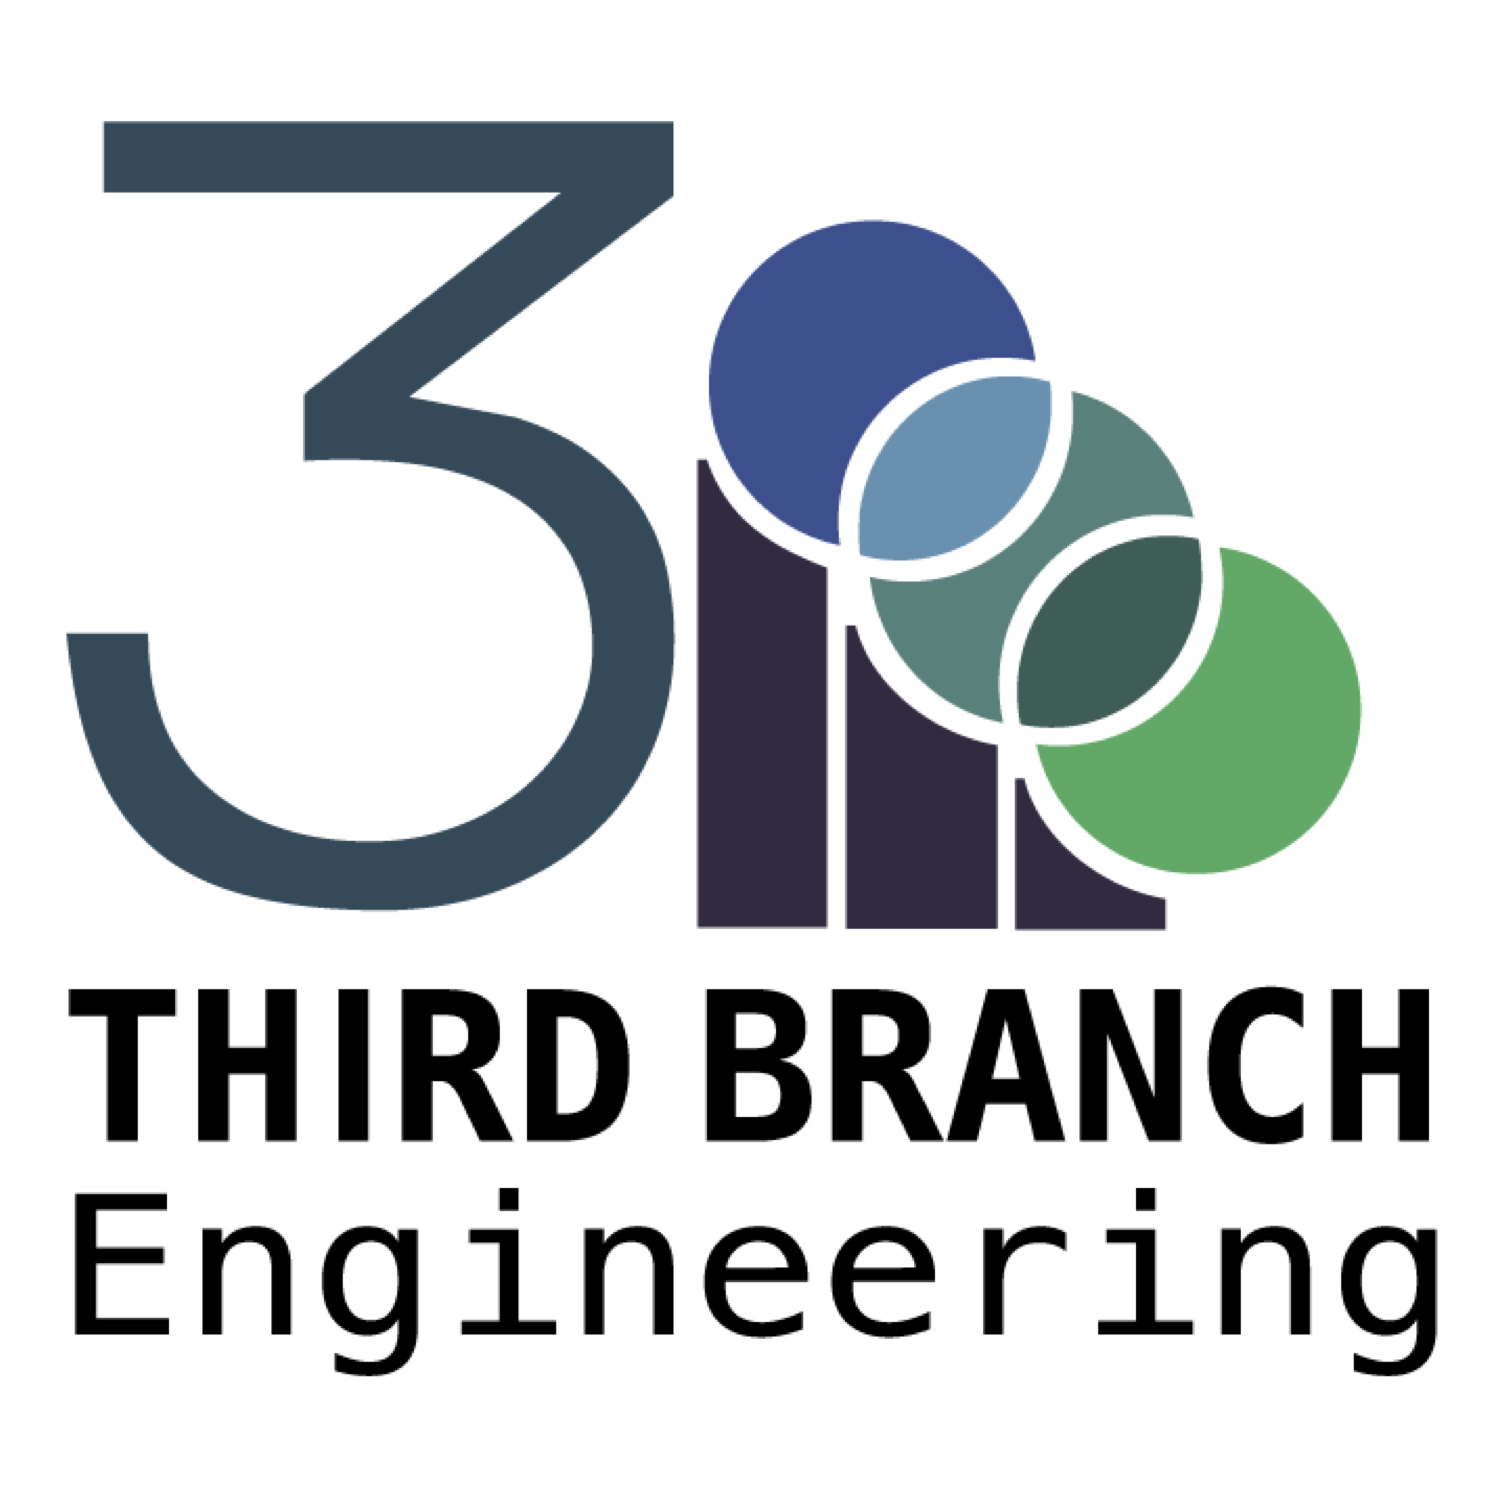 Third Branch Engineering   Third Branch Engineering embraces the triple bottom line of People, Planet, and Profit and provides environmental engineering services to enhance and support its clients' sustainability and corporate social responsibility goals and reporting.